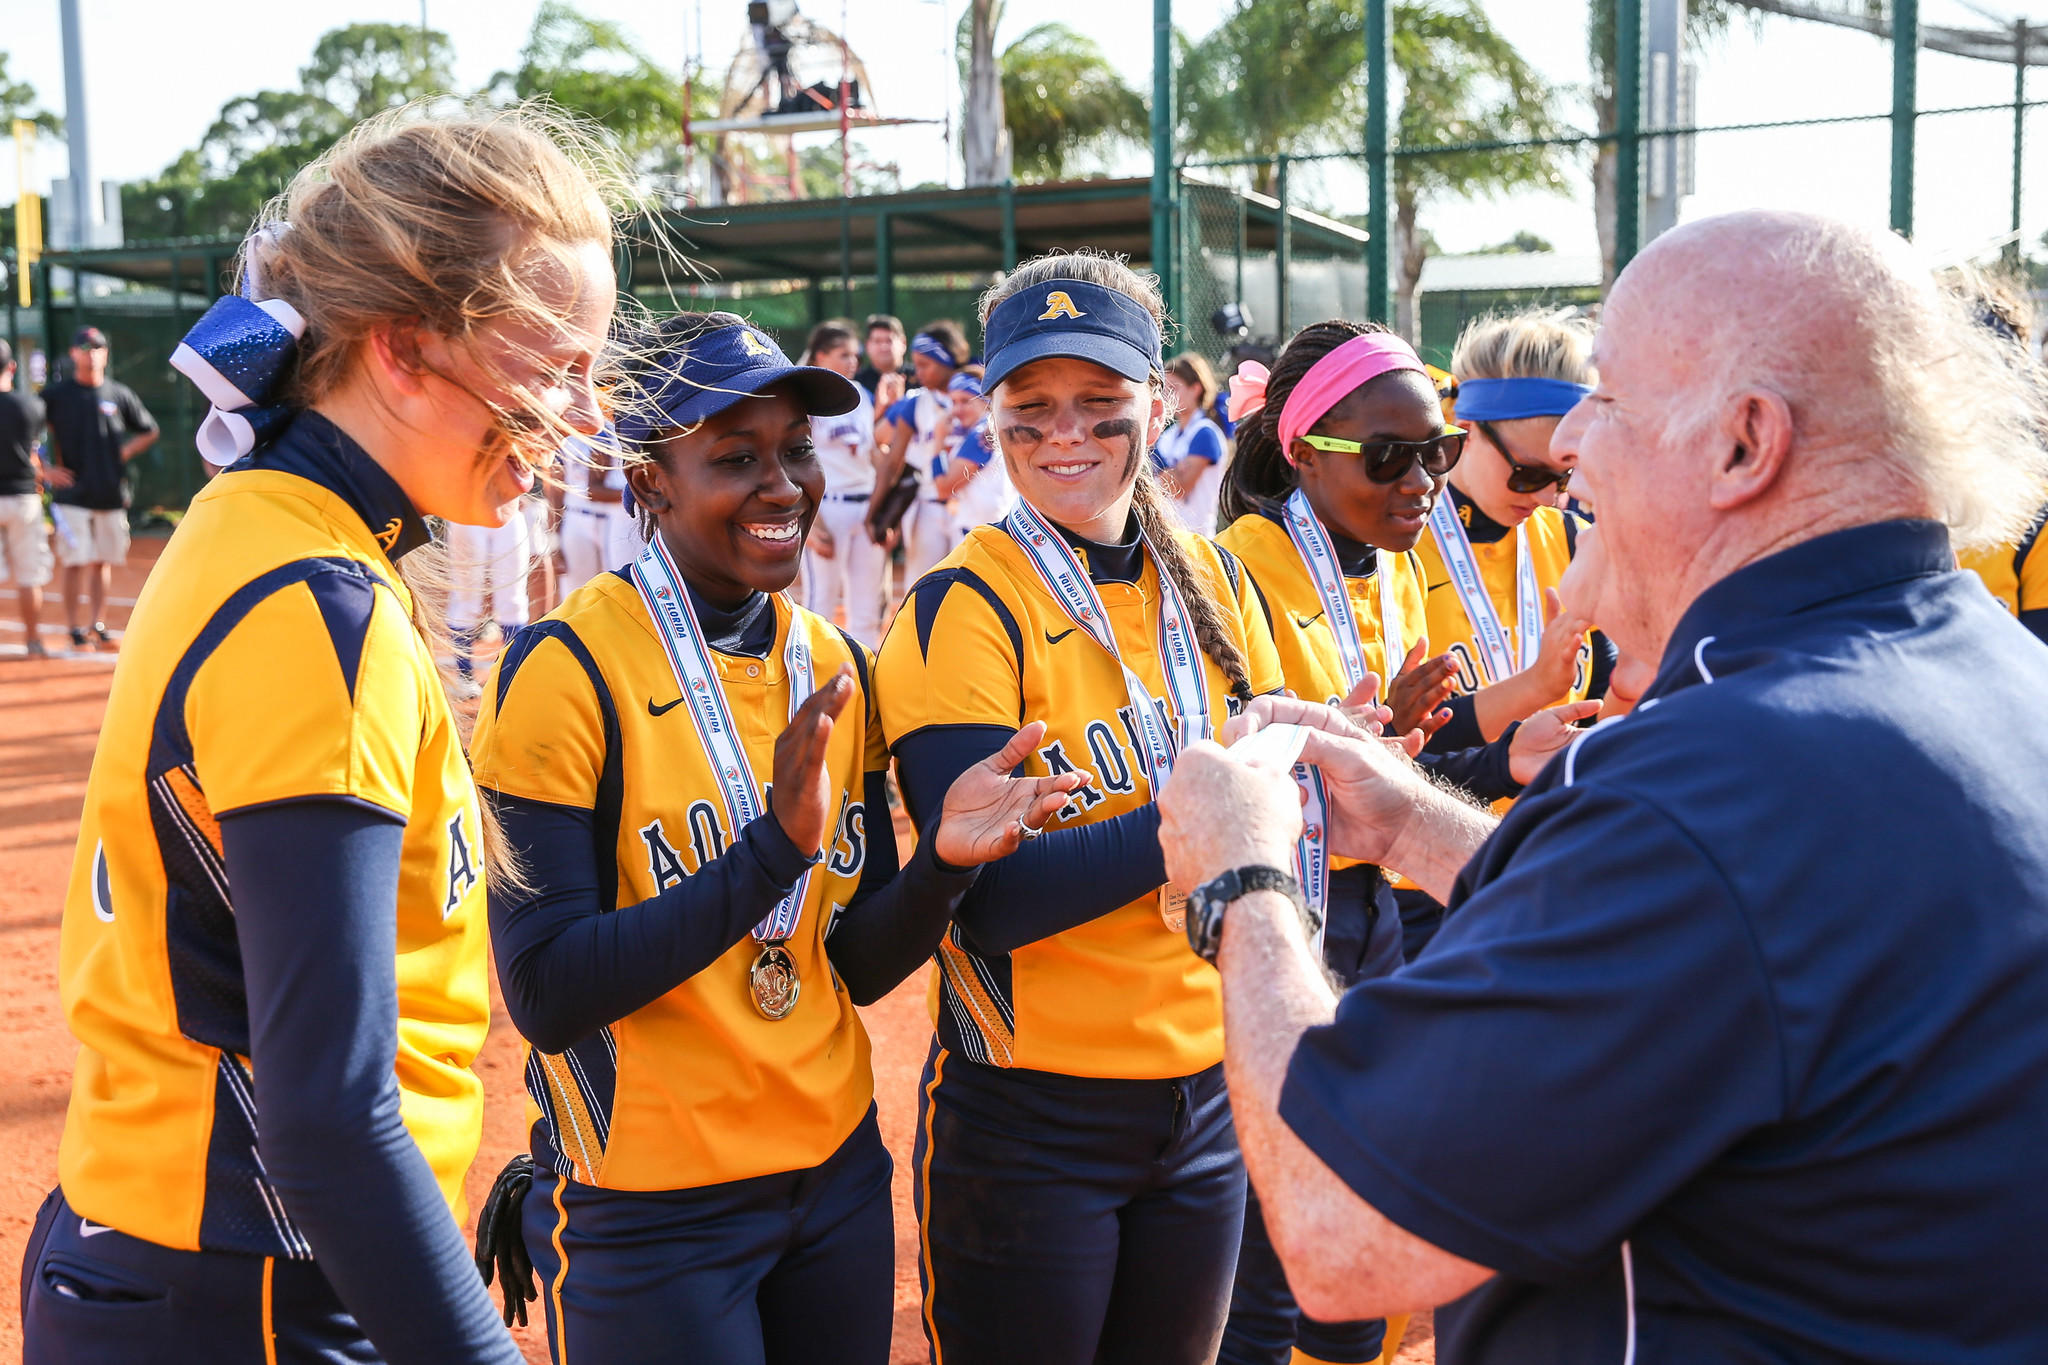 J. PATRICK RICE / SPECIAL TO THE SENTINEL St. Thomas Aquinas Raiders pitcher Meghan King (L) receives her medal with her teammates after winning the 2014 FHSAA Class 7A Championship game against Harmony played at Historic Dodgertown in Vero Beach on Saturday, May 10, 2014. ORG XMIT: B583717577Z.1